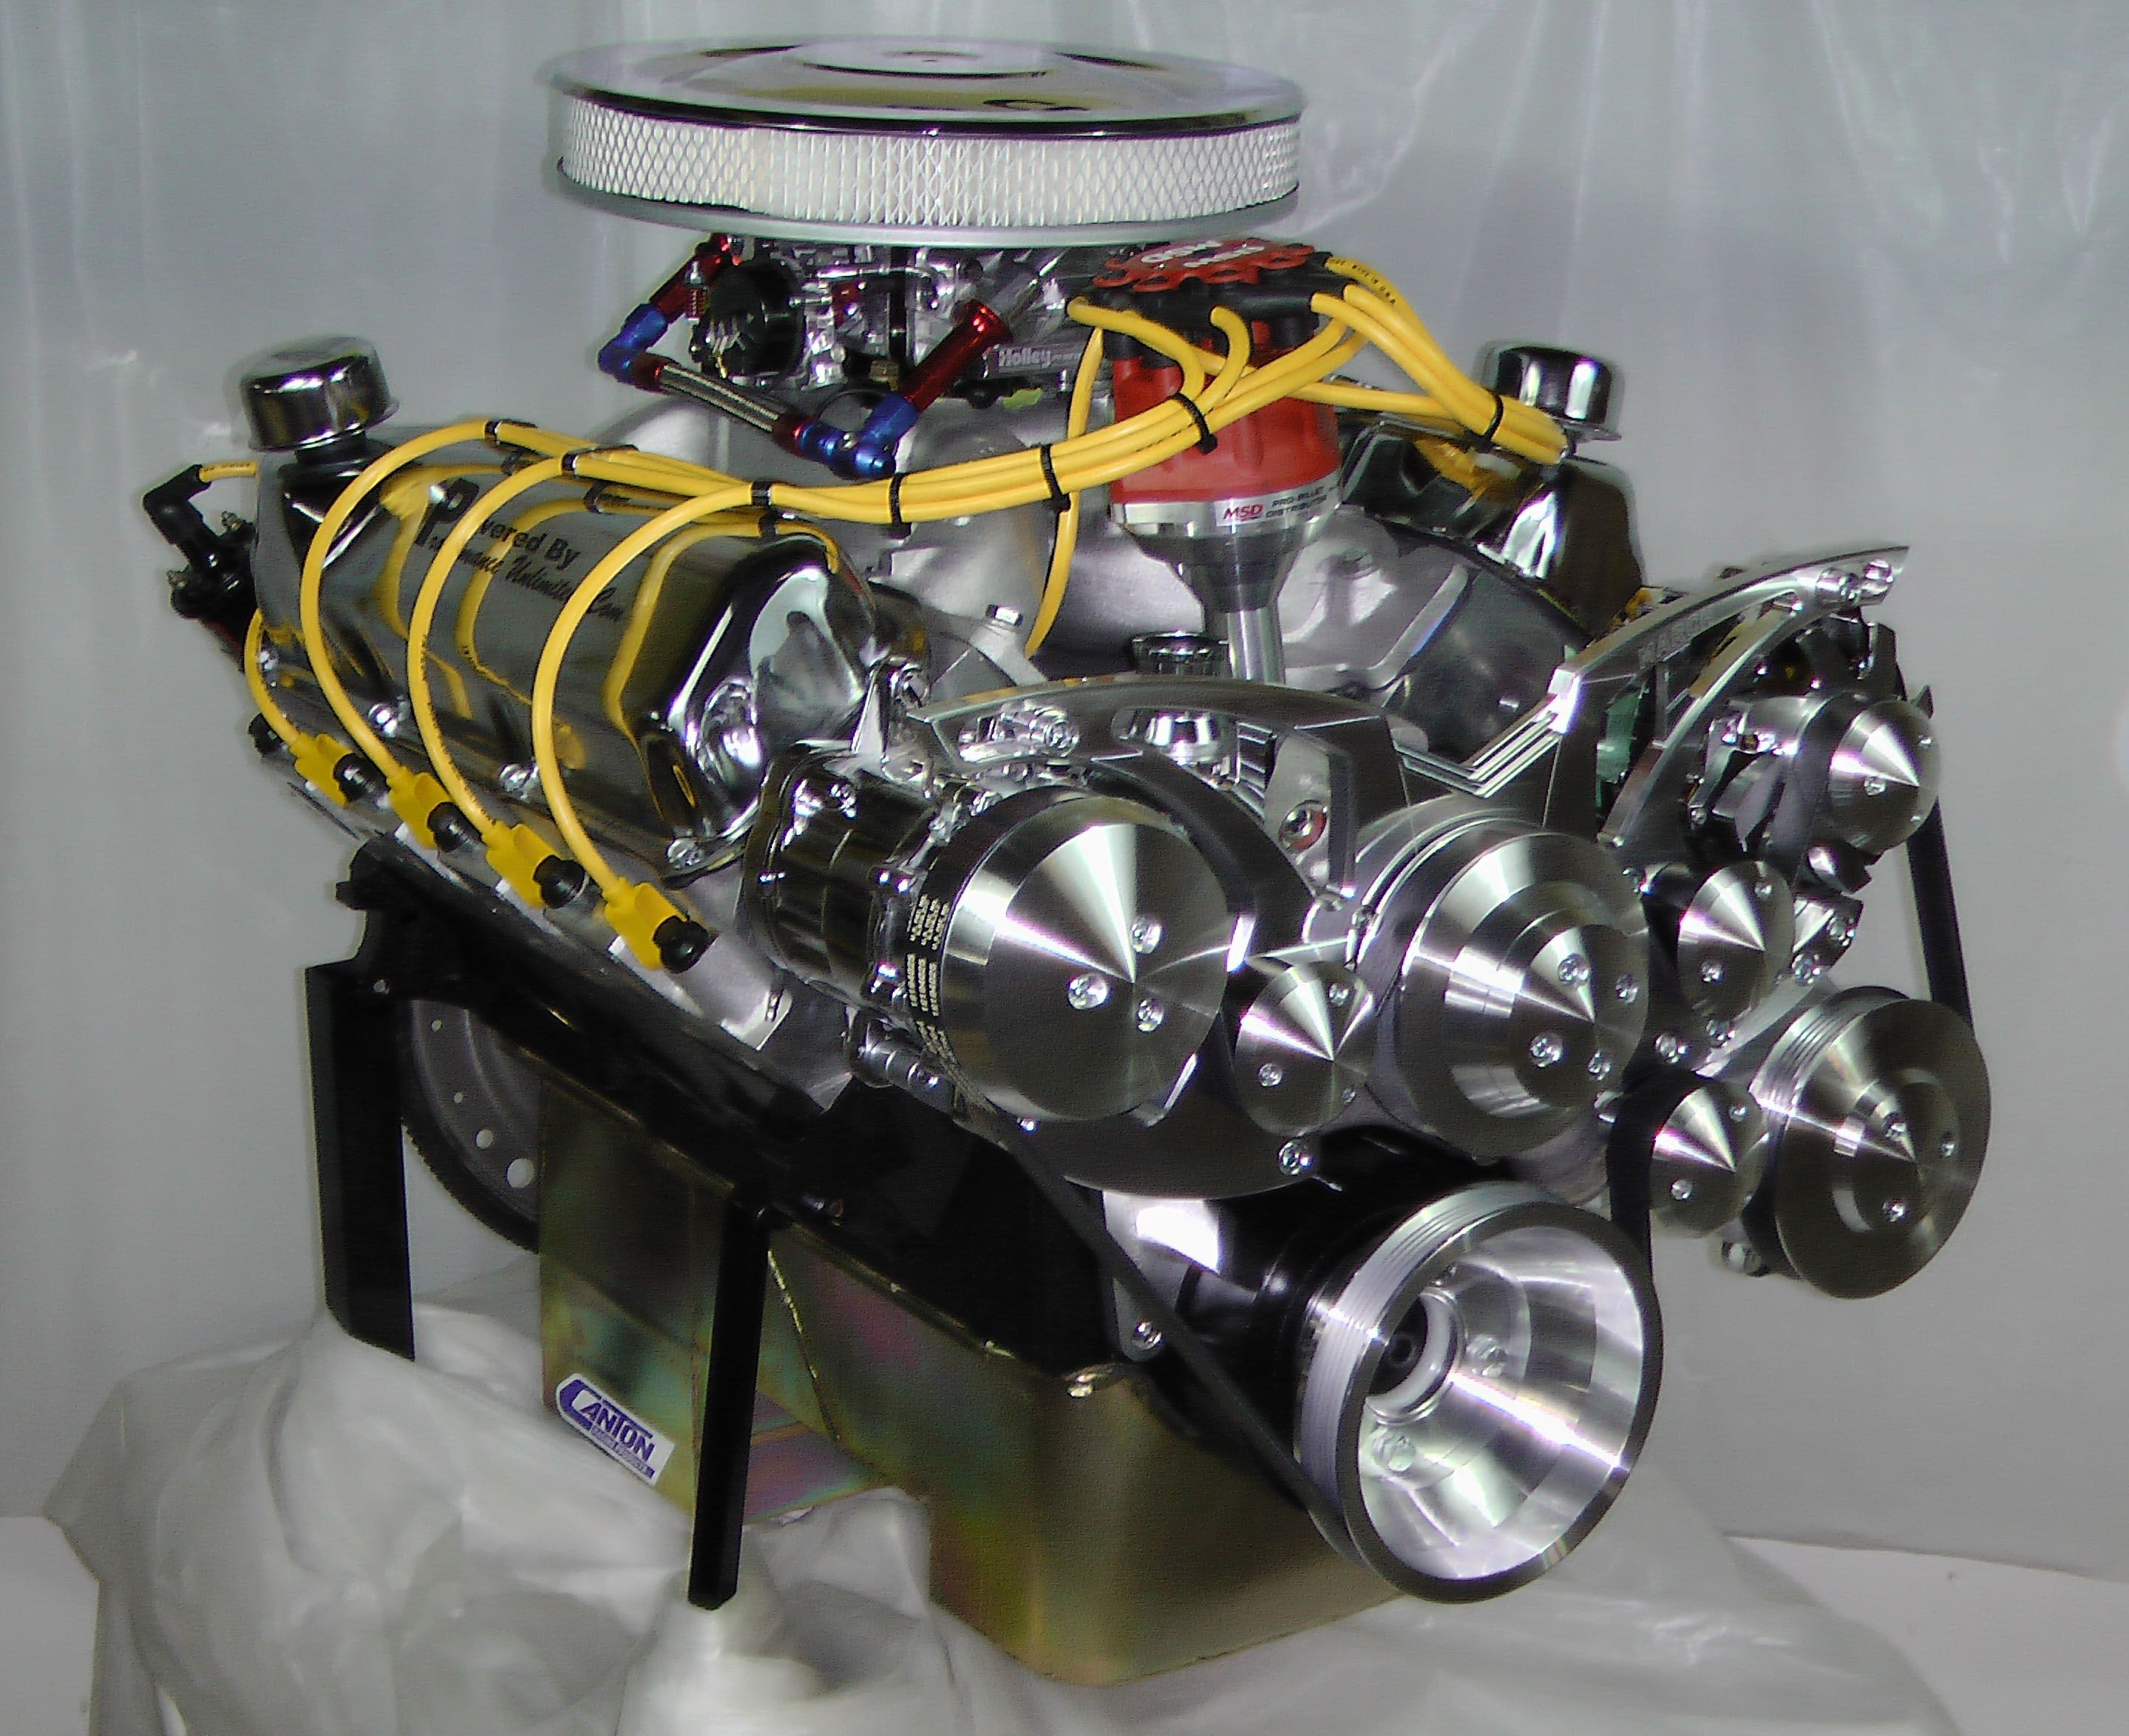 Ford crate engines by proformance unlimited